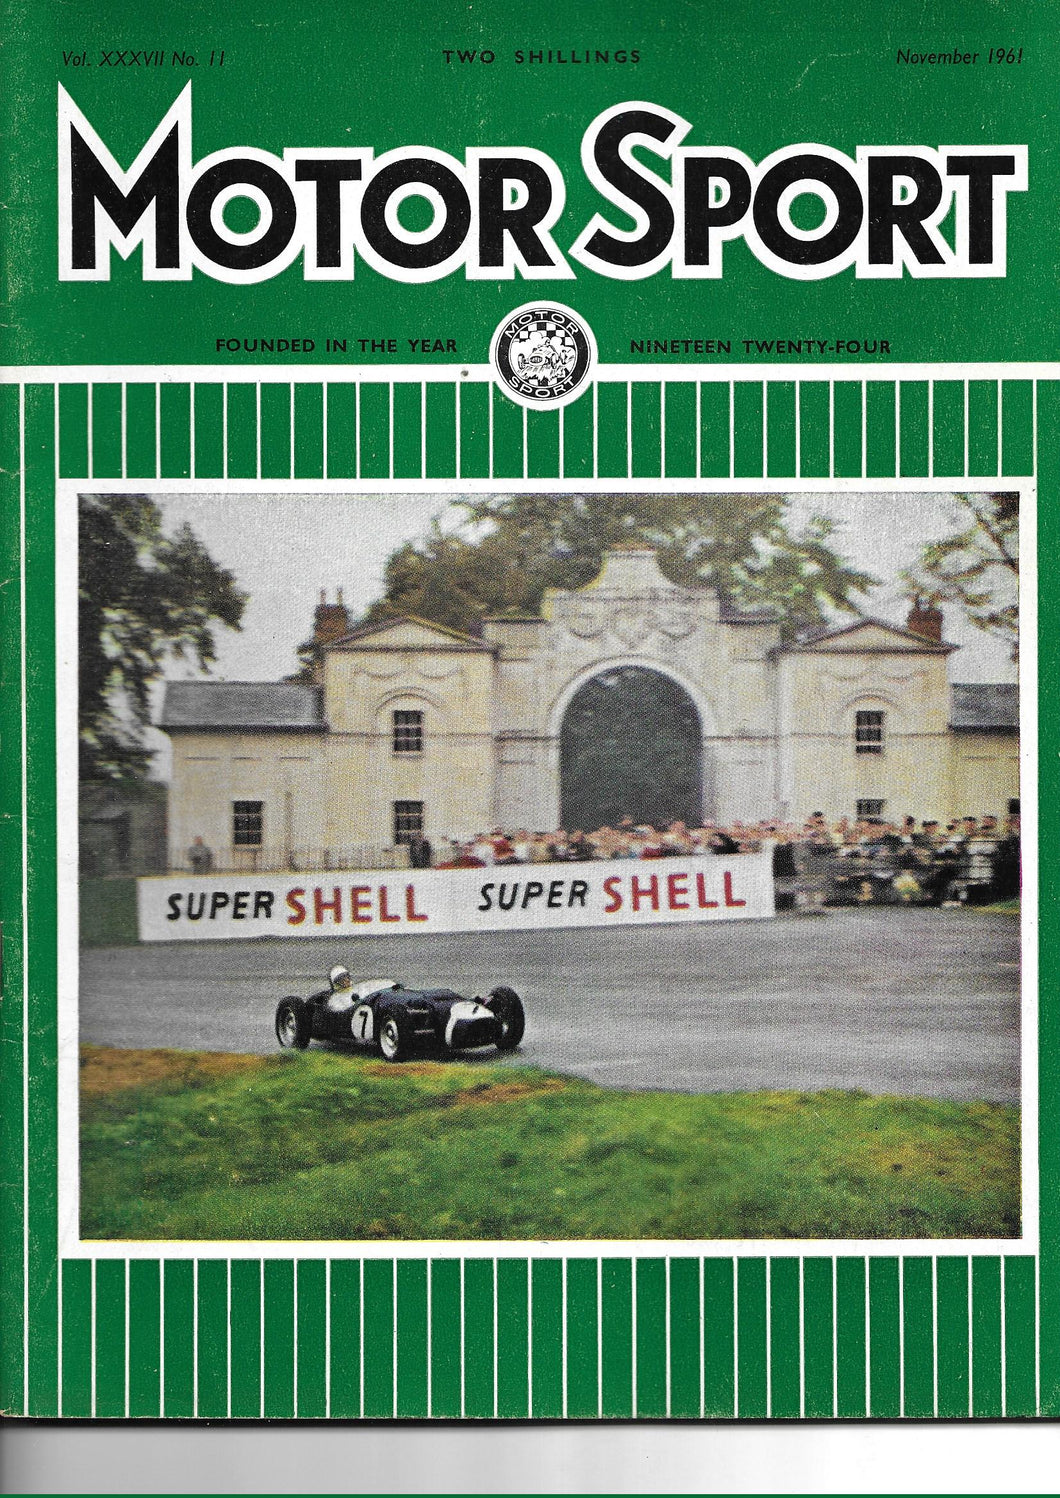 Motor Sport, Motorsport, Magazine, Vol XXXVII No. 11 November 1961